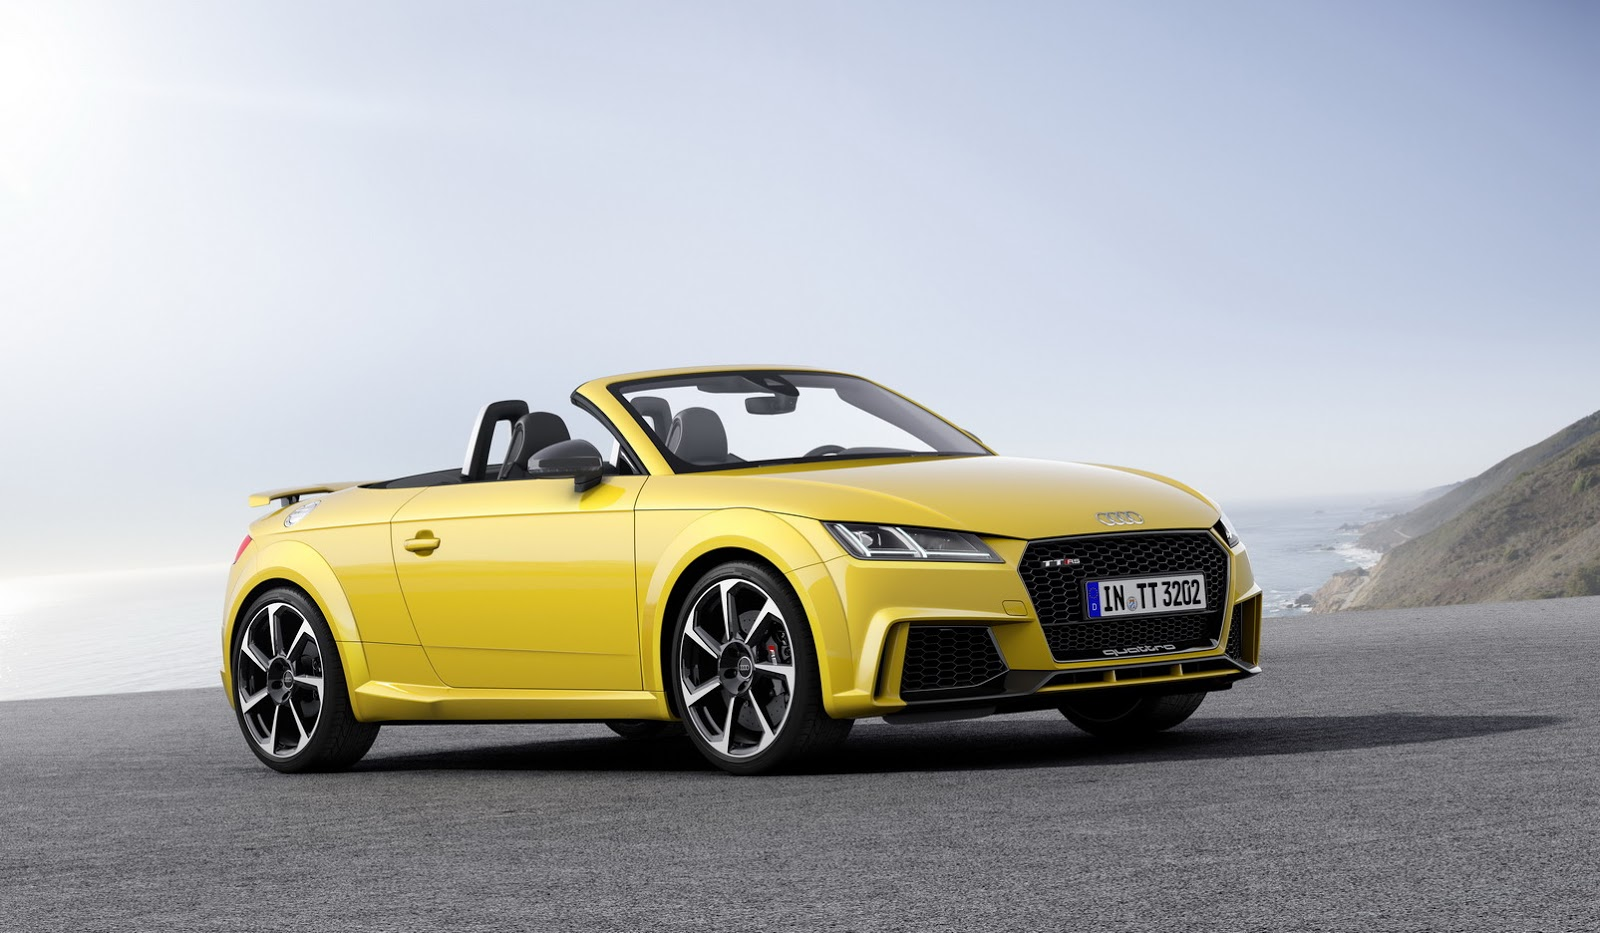 2018 Audi TT Coupe 3.2 photo - 1